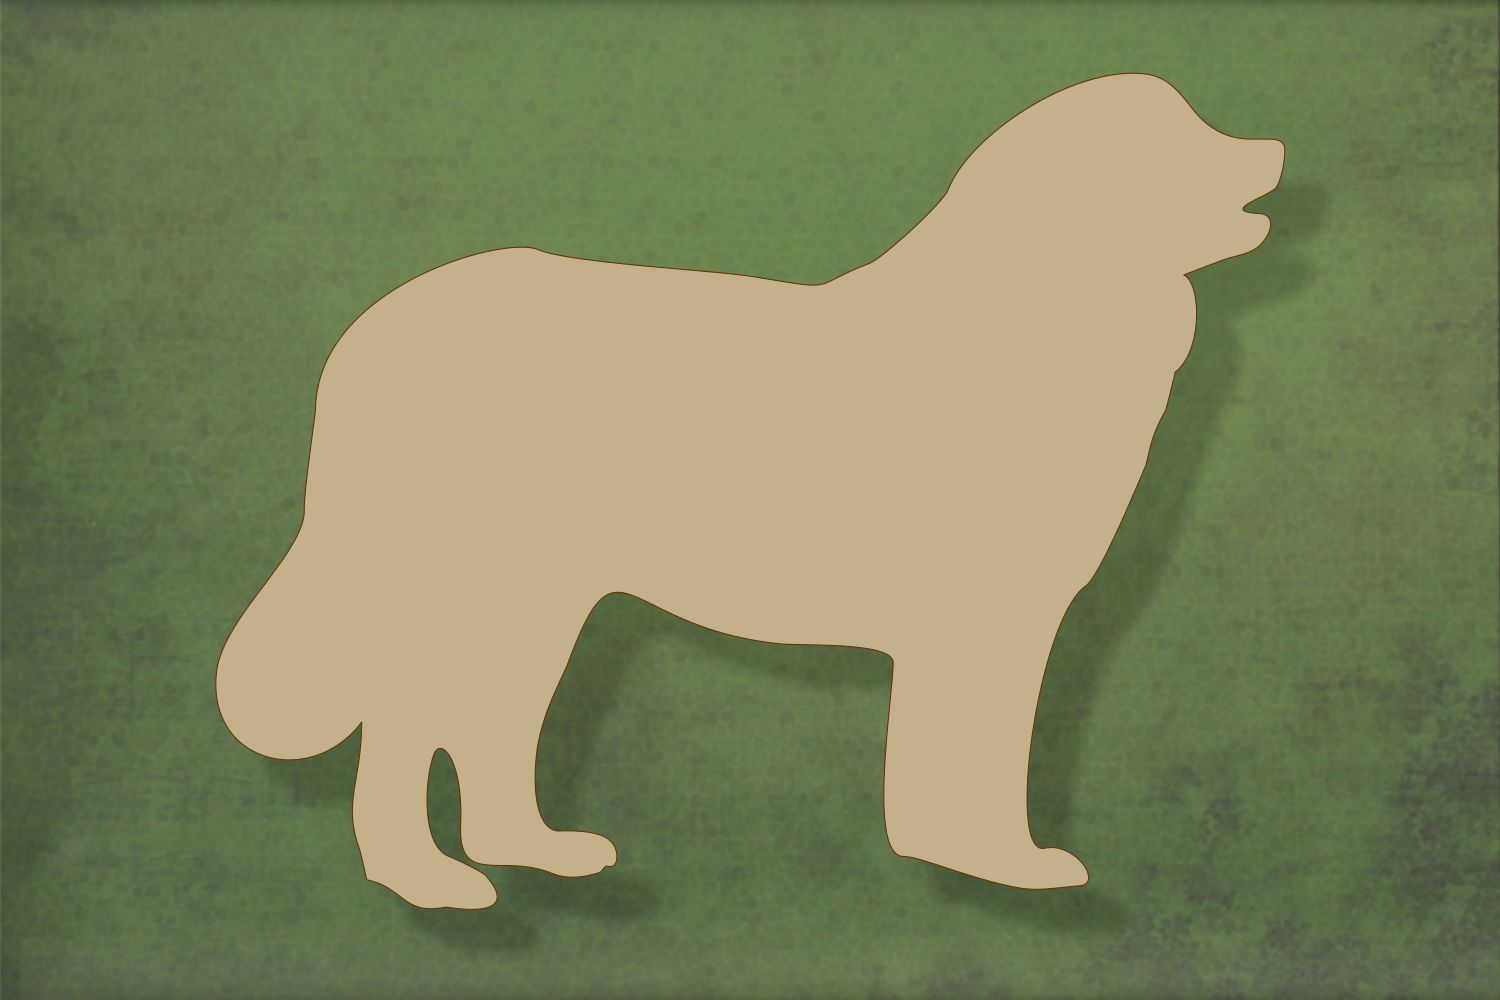 Laser cut, blank wooden Leonberger shape for craft